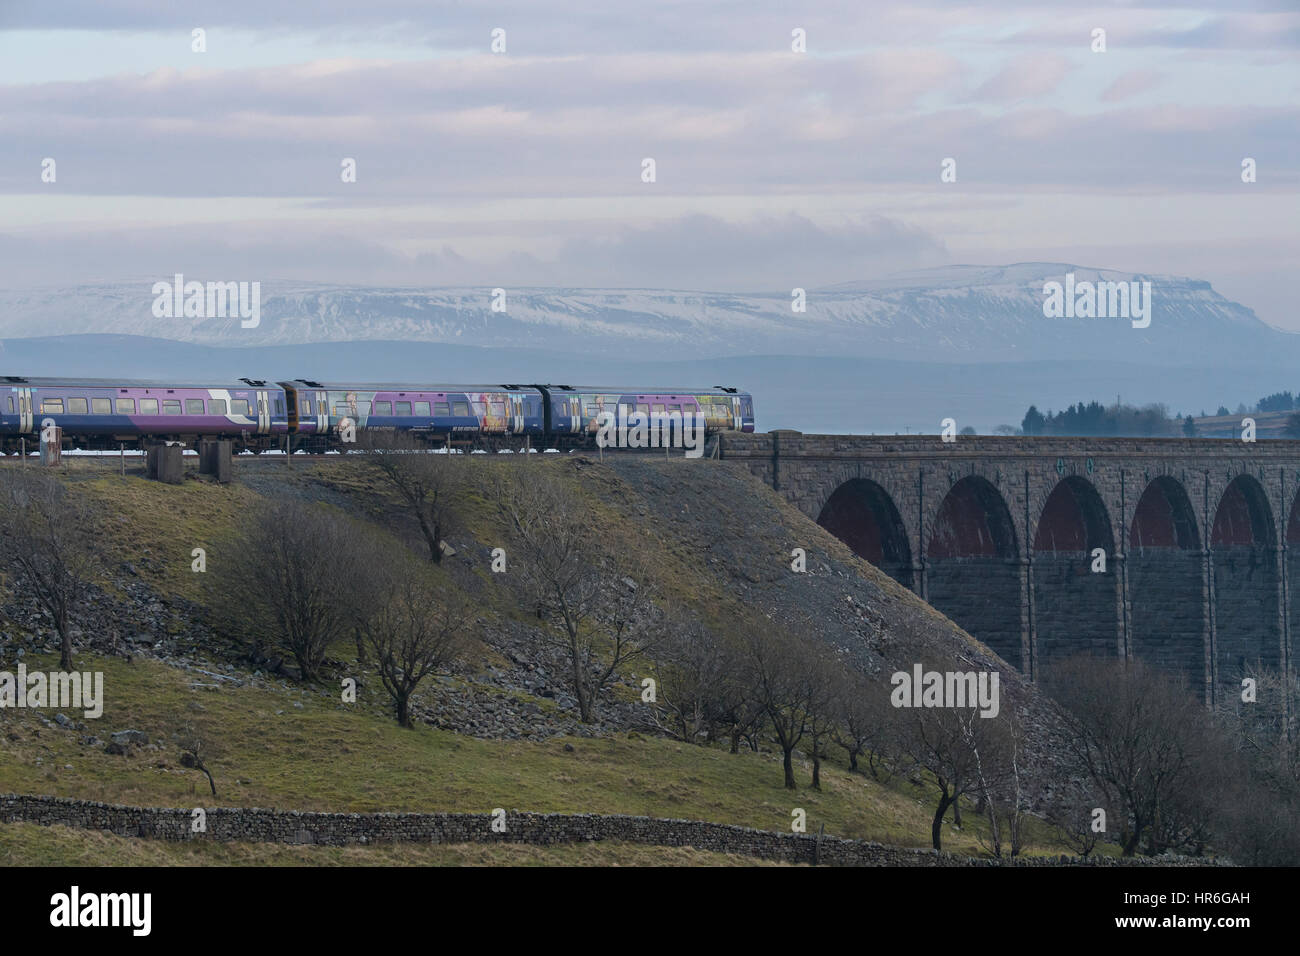 An Arriva Rail Northern passenger diesel train going across the Ribblehead Viaduct on a grey winter day with snow - Stock Image